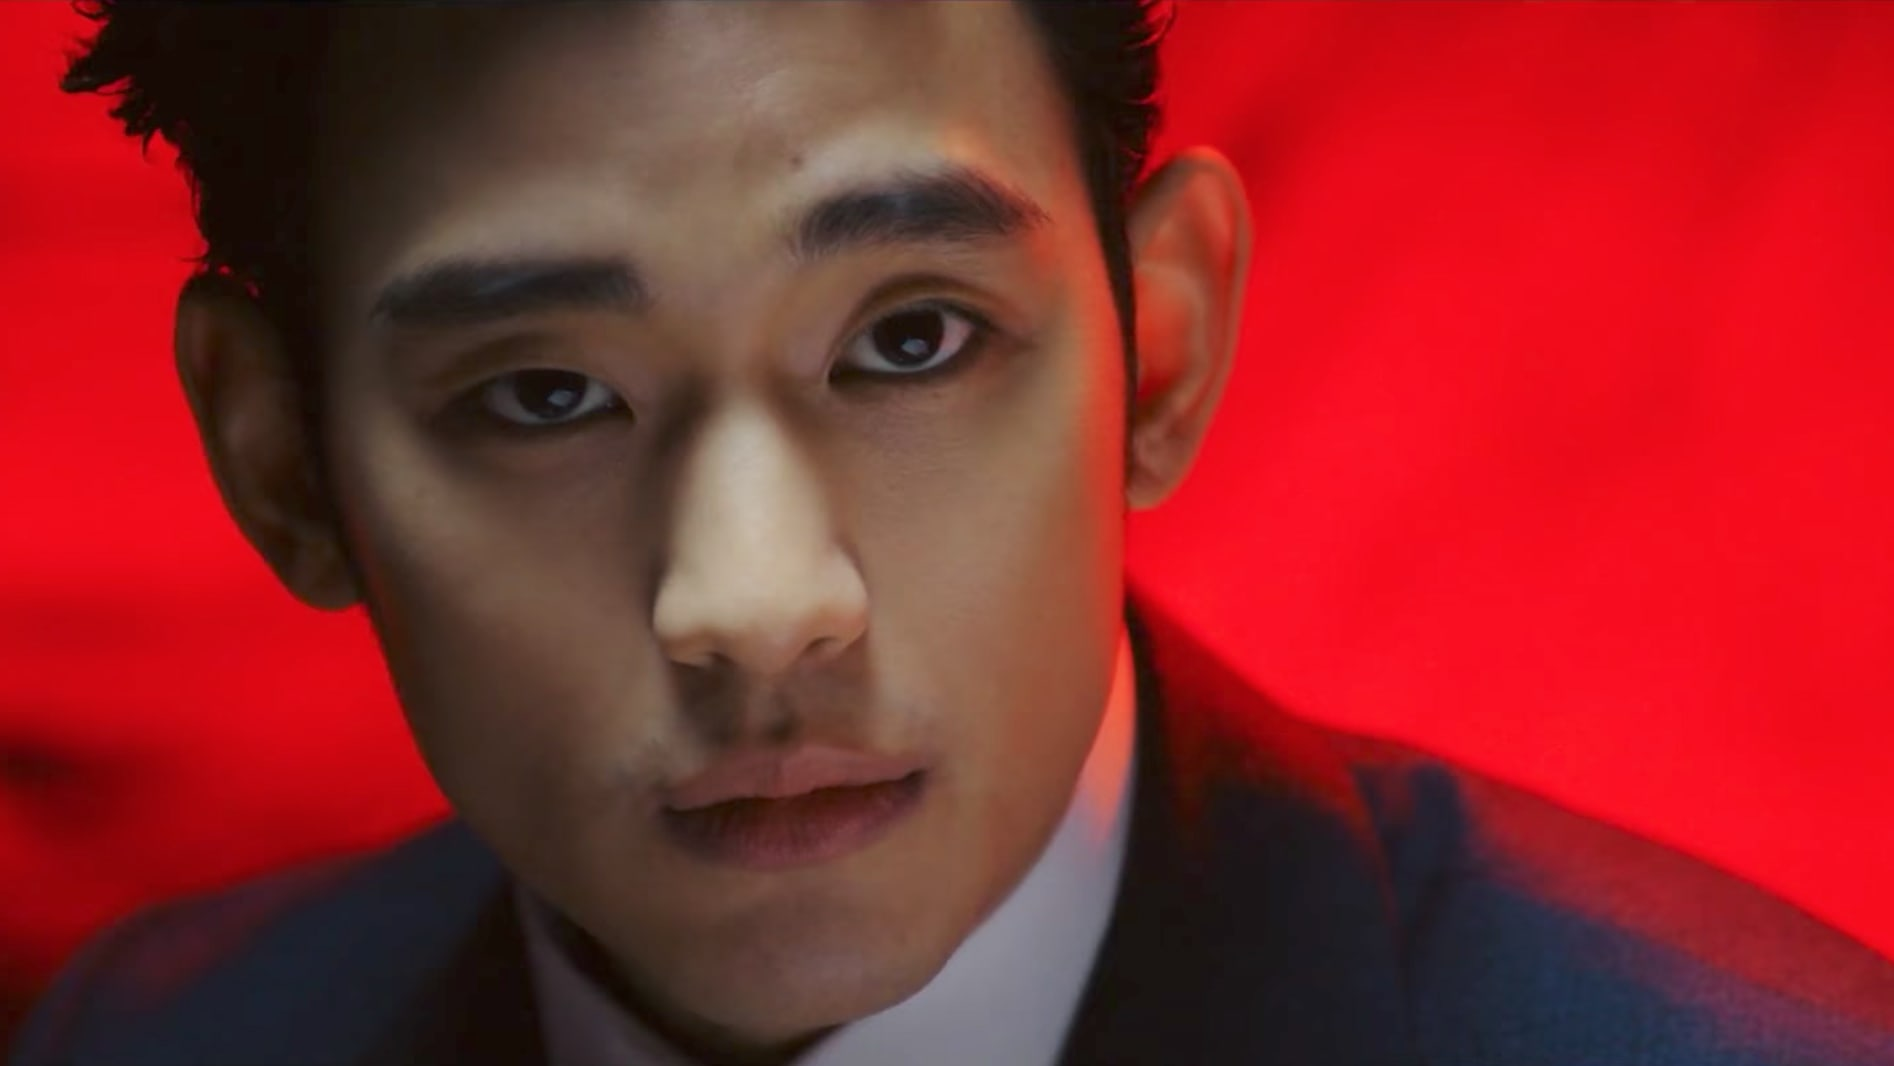 Watch: Kim Soo Hyun Becomes The Go-To Man Of The Criminal World In Trailer For Real